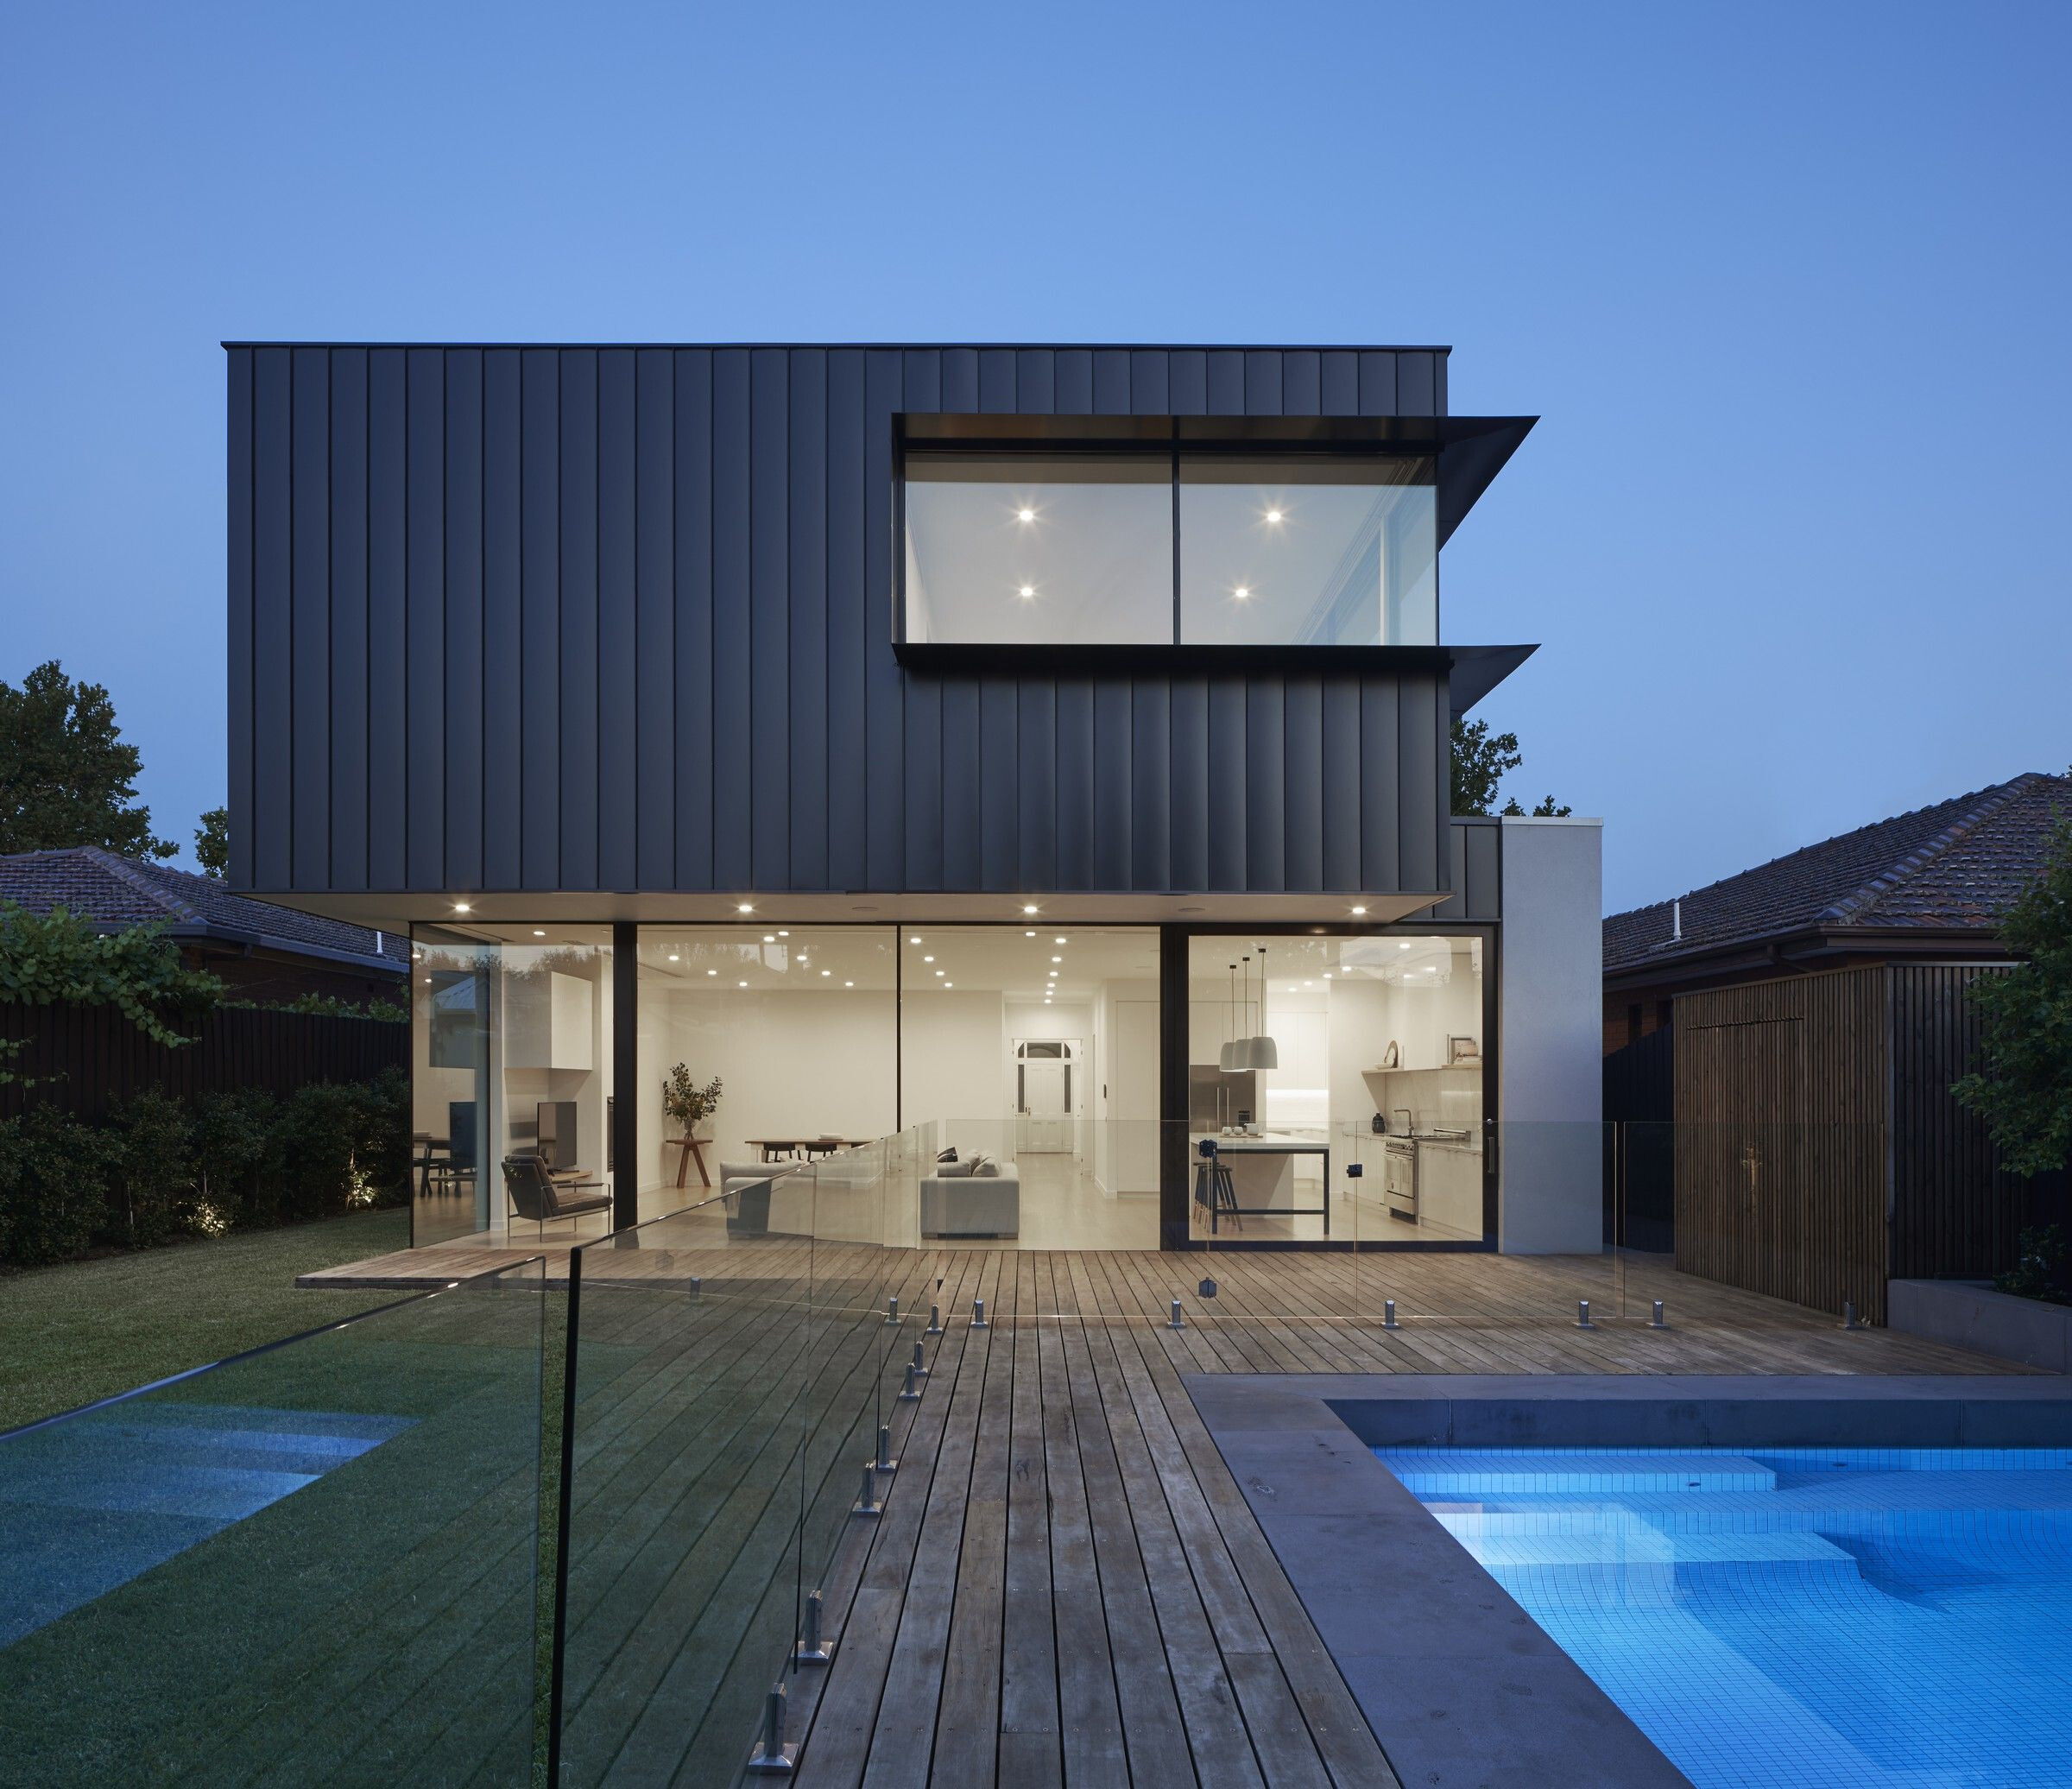 Hovering House